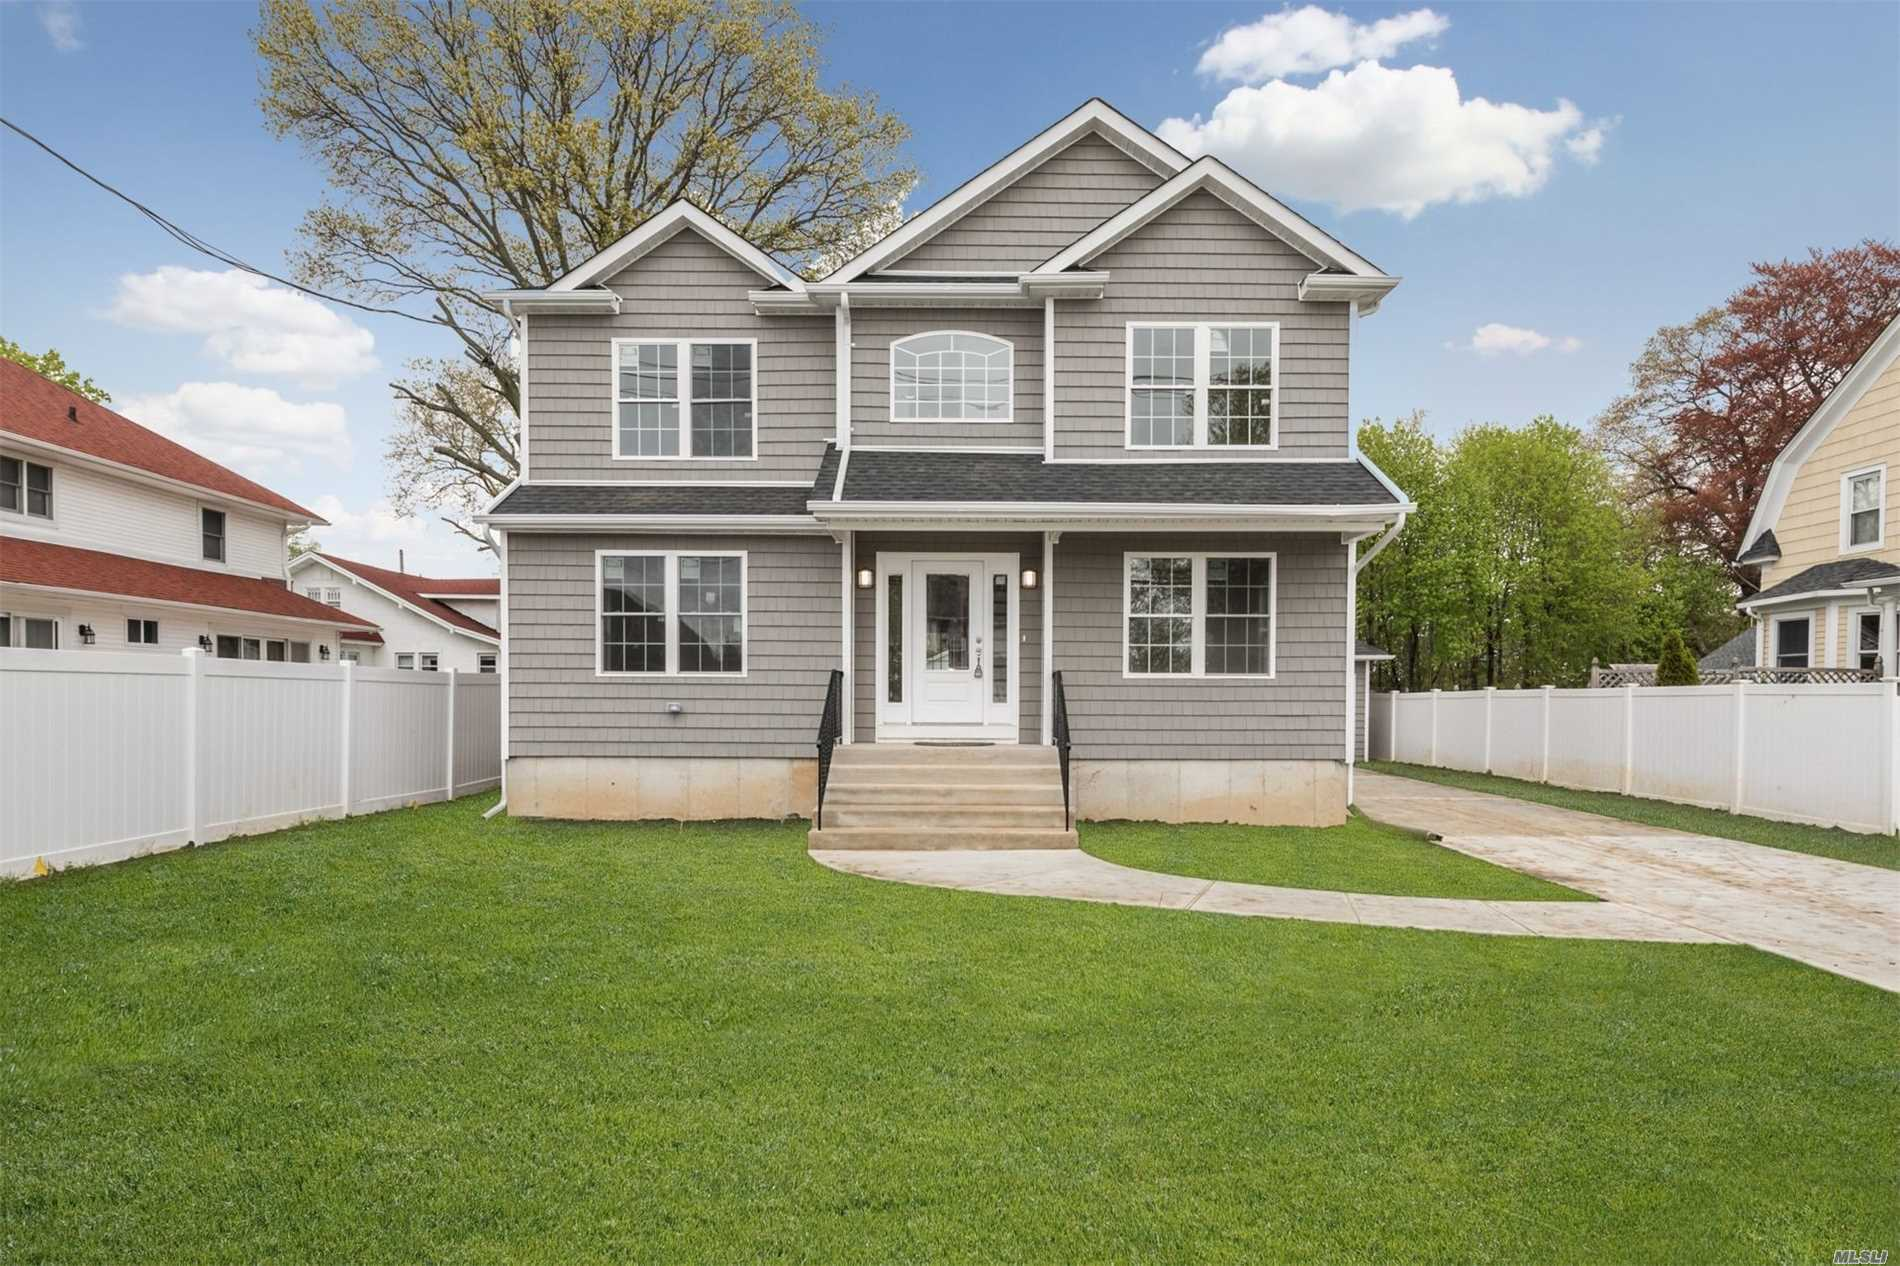 Location, Location, New Home in the Heart of Baldwin. Granite and Stainless Kitchen, Master Suite with Full Bath and walk In Closet. 4 Add'l Bedrooms. Full Basement with Outside Entrance. Close to Train and Transportation.